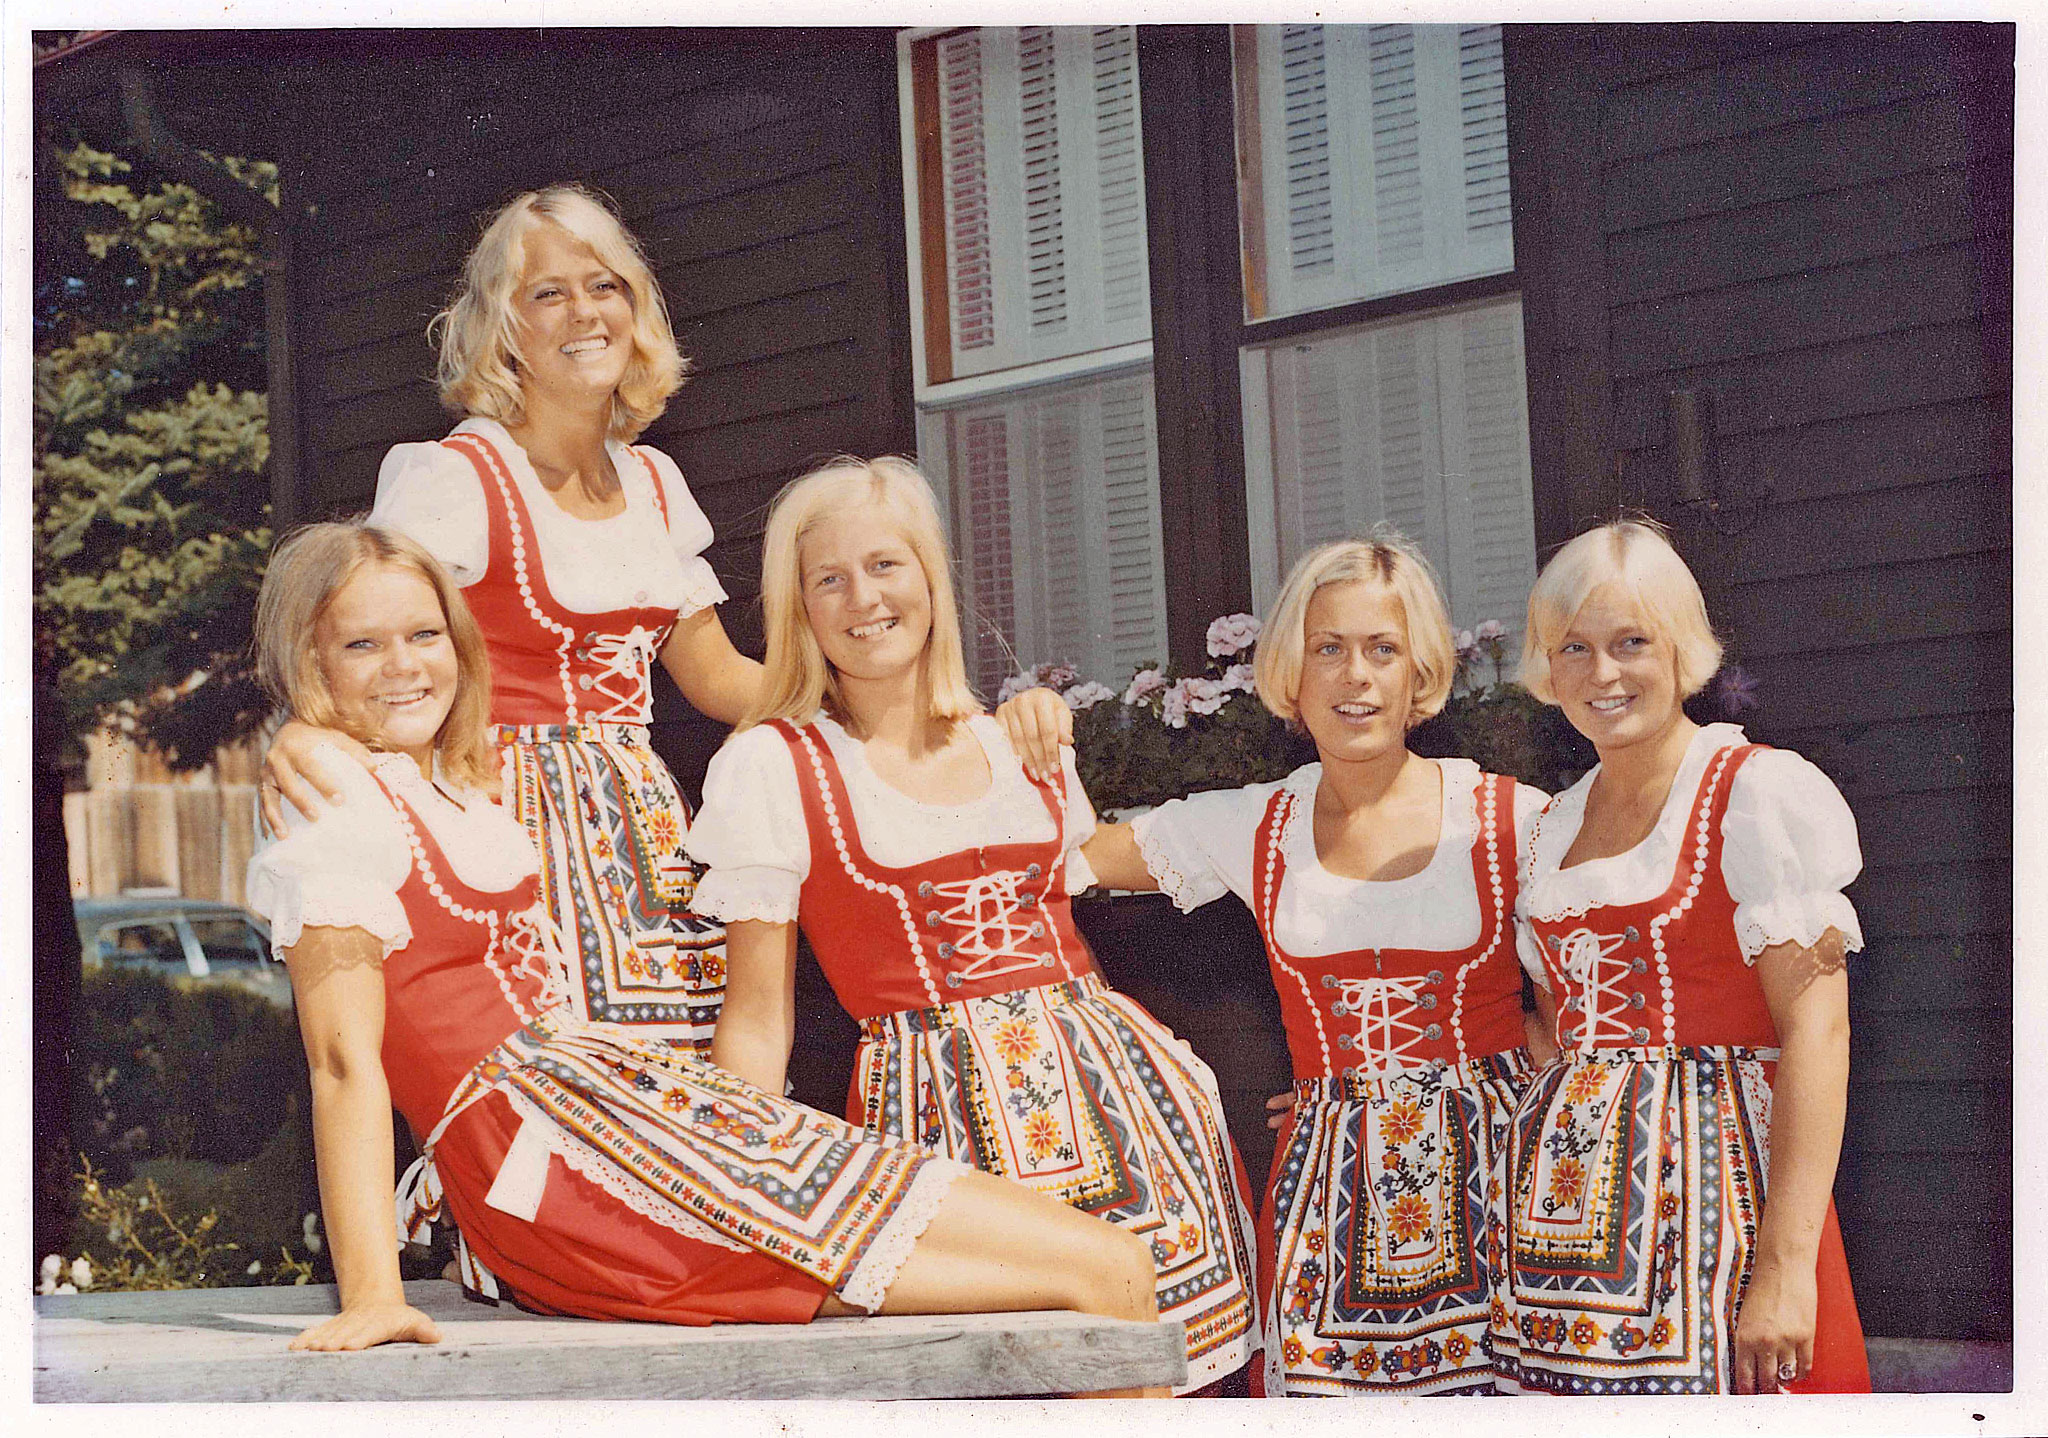 Swedish waitresses 1972